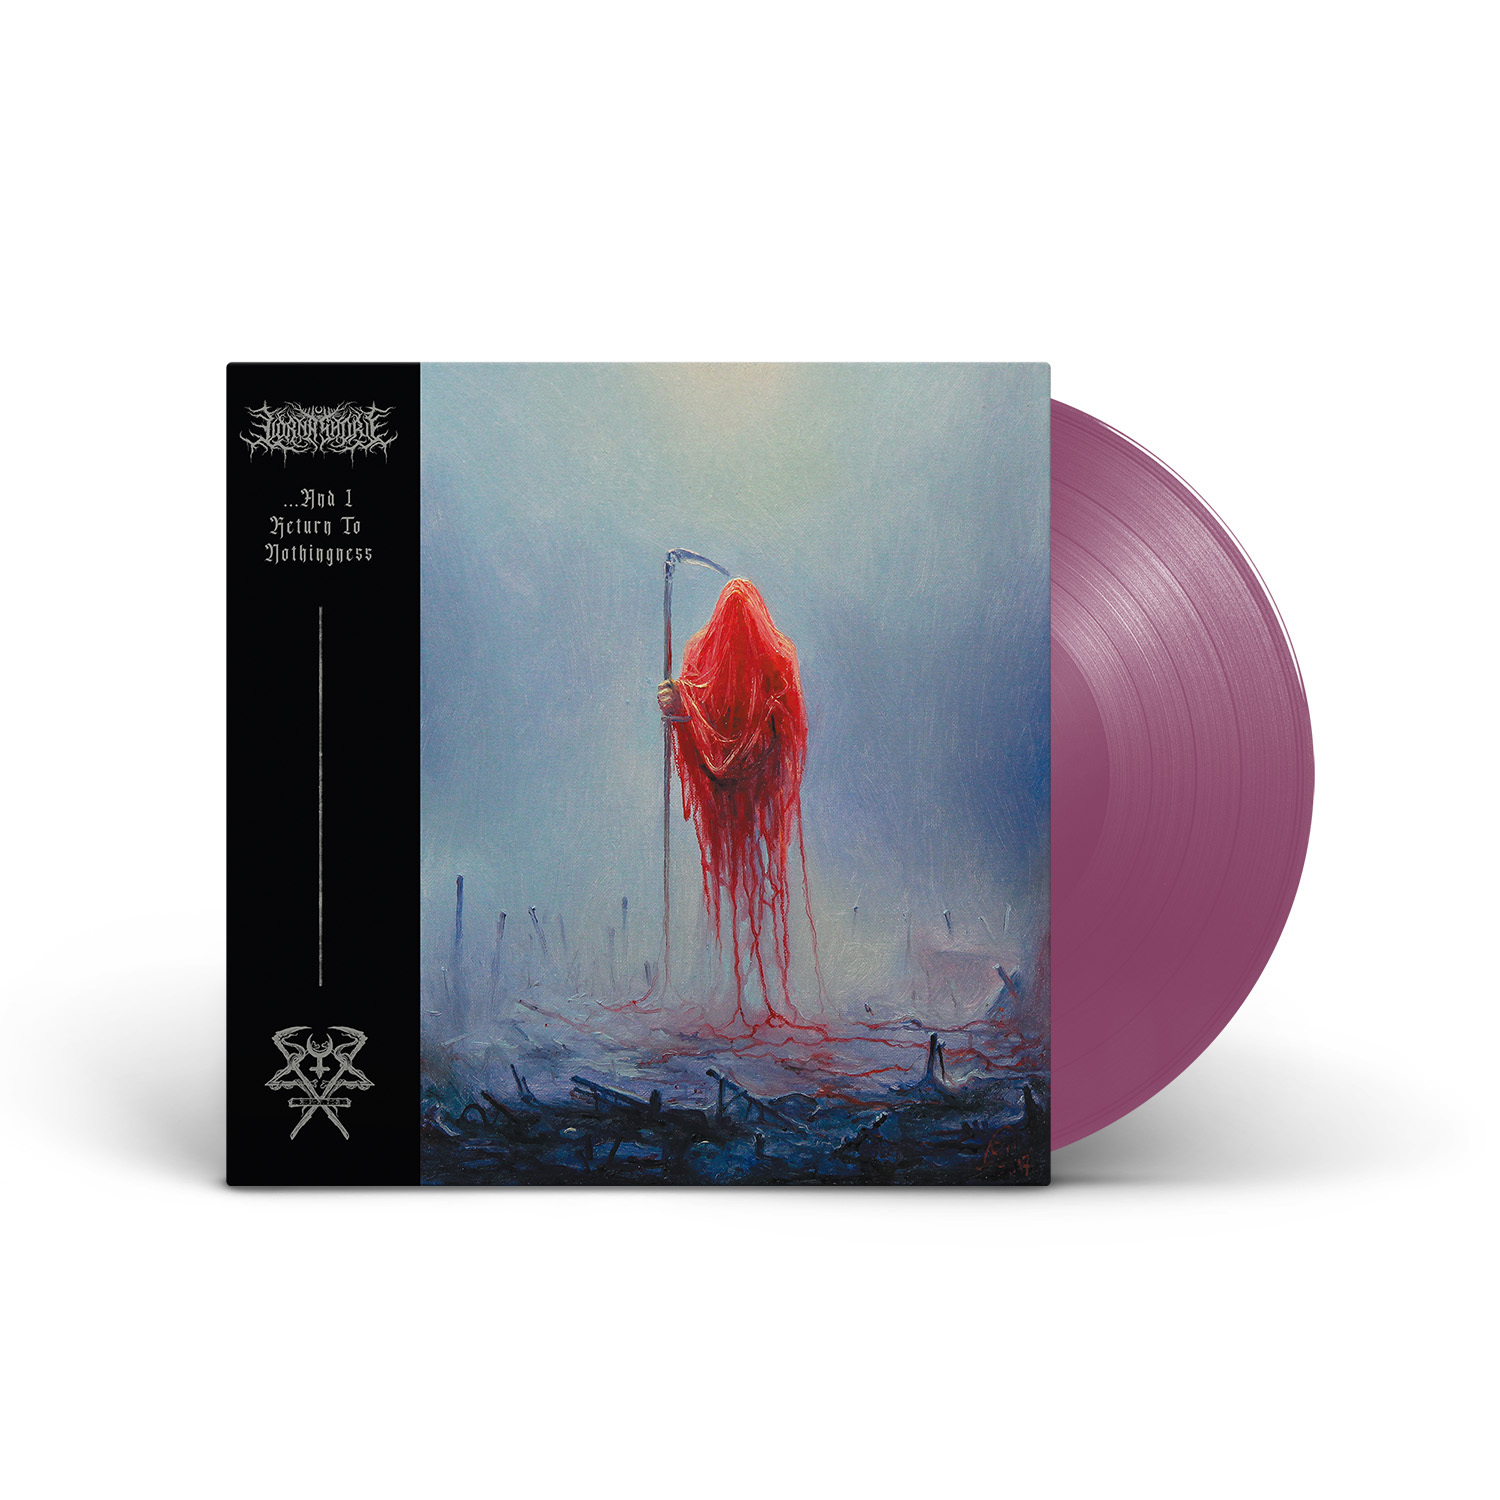 Lorna Shore - ...And I Return To Nothingness Orchid Vinyl LP with Etching on Side B + Digital Download